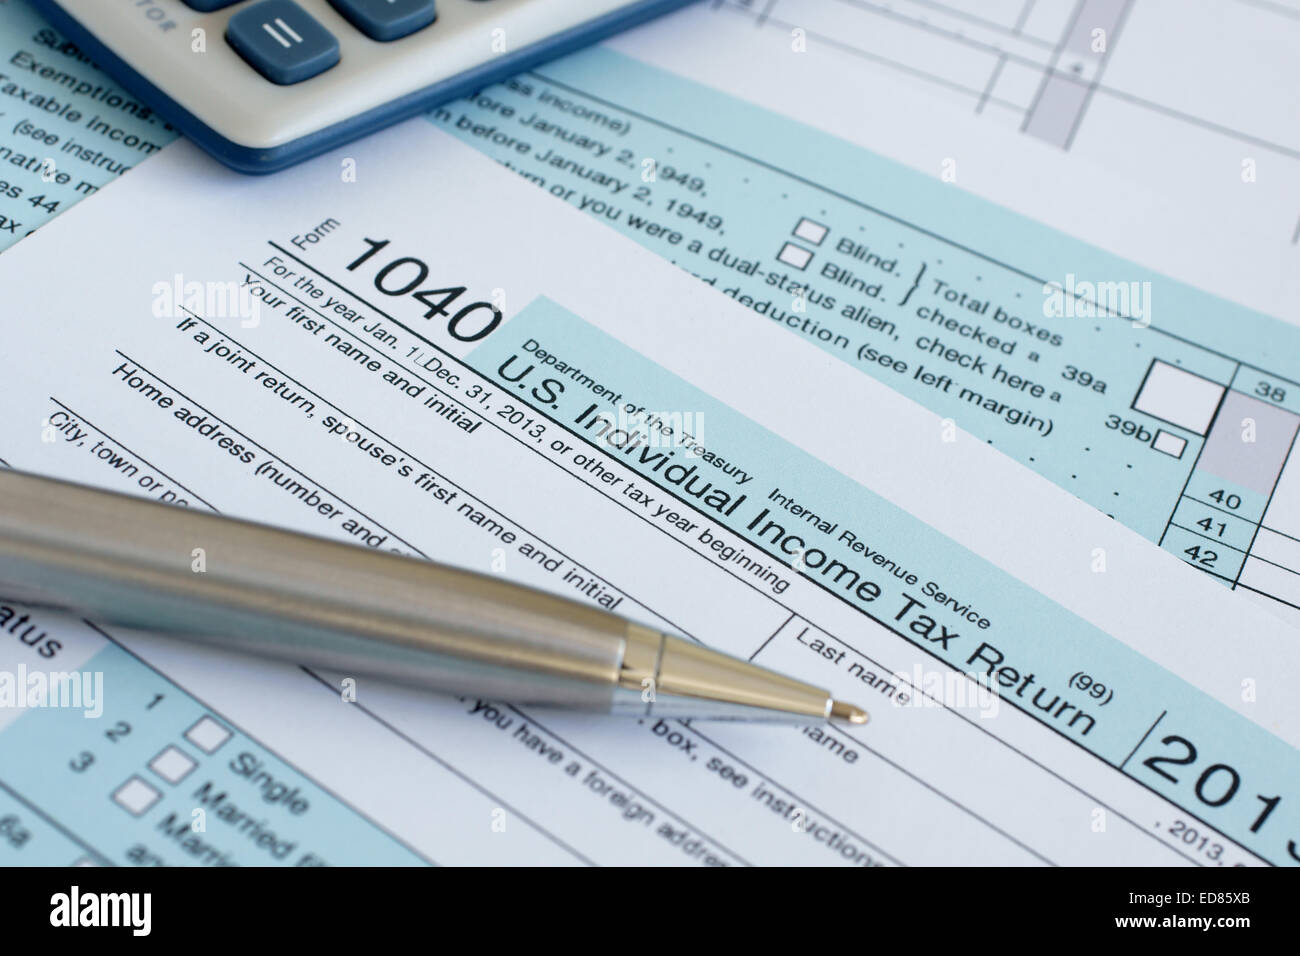 United states federal income tax return irs 1040 documents stock united states federal income tax return irs 1040 documents falaconquin